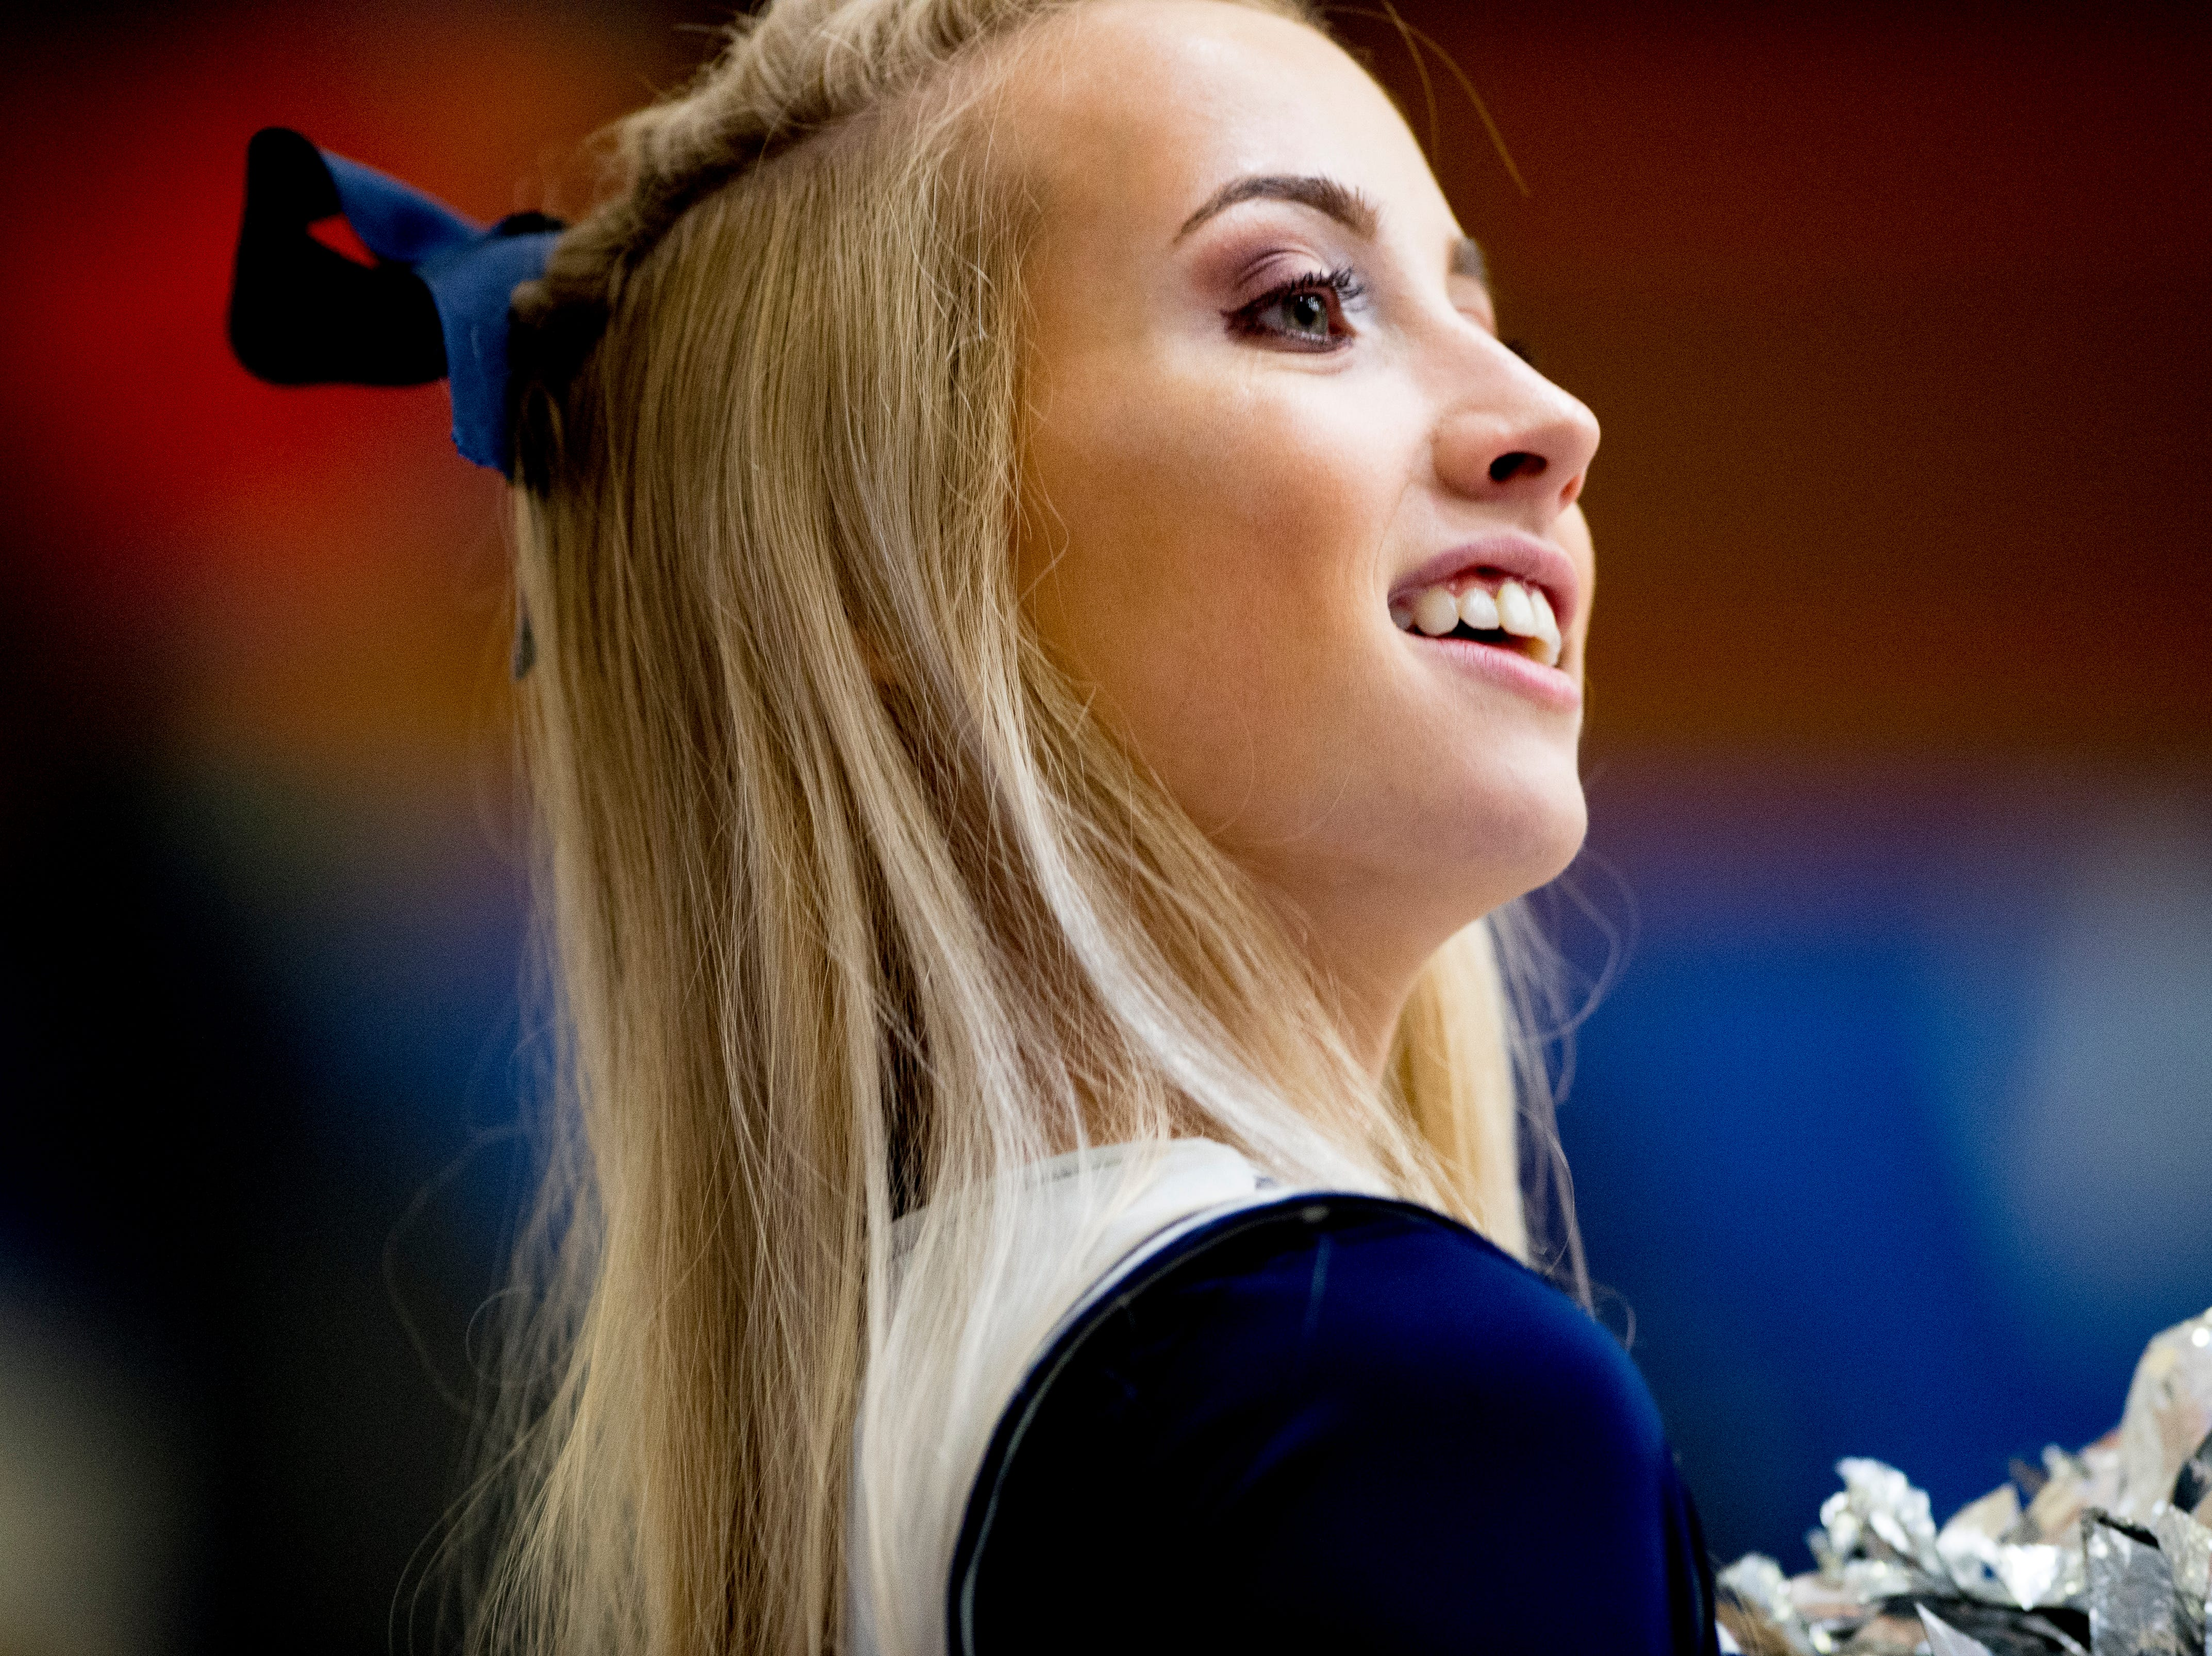 An Anderson County cheerleader cheers during a semifinal game at Karns High School in Knoxville, Tennessee on Saturday, February 16, 2019.